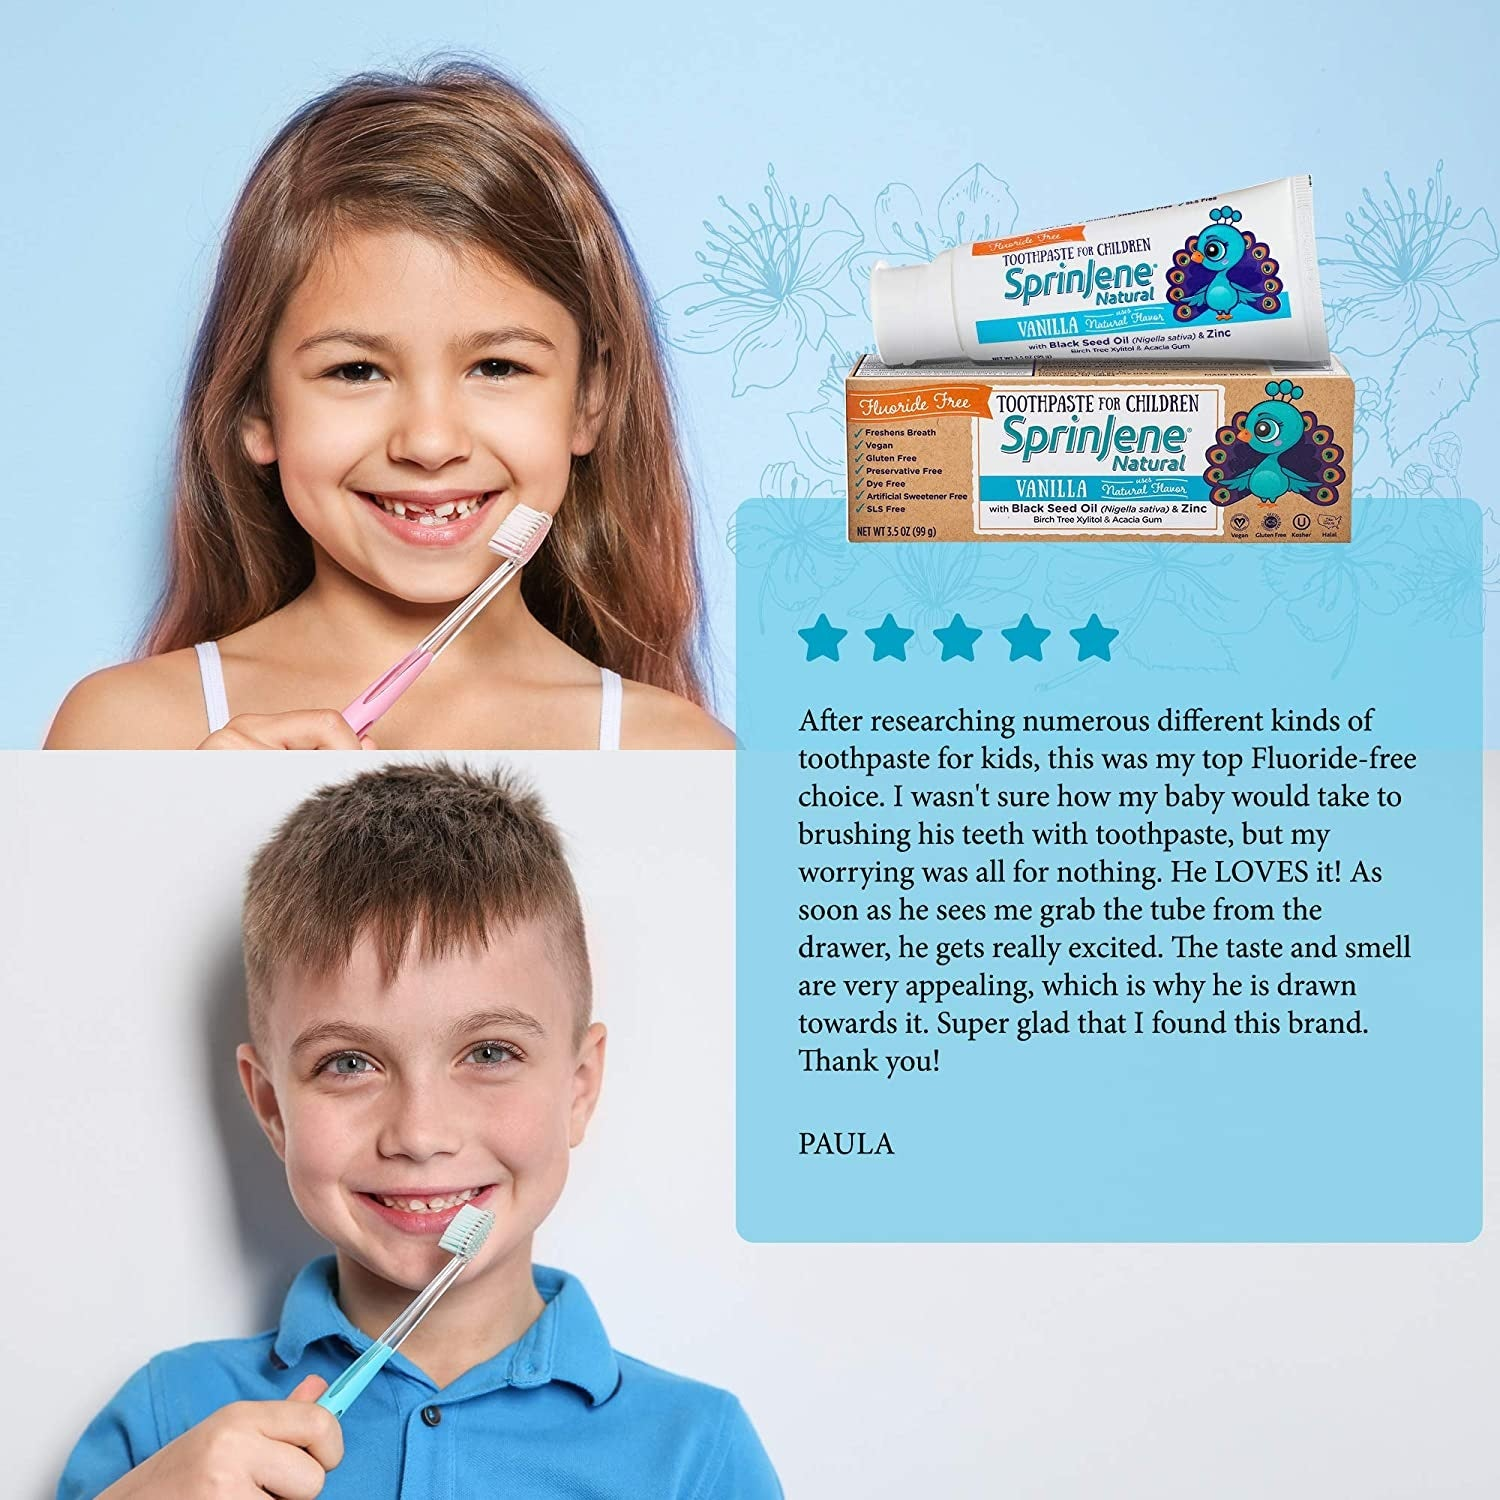 Natural Toothpaste for Kids with Reviews